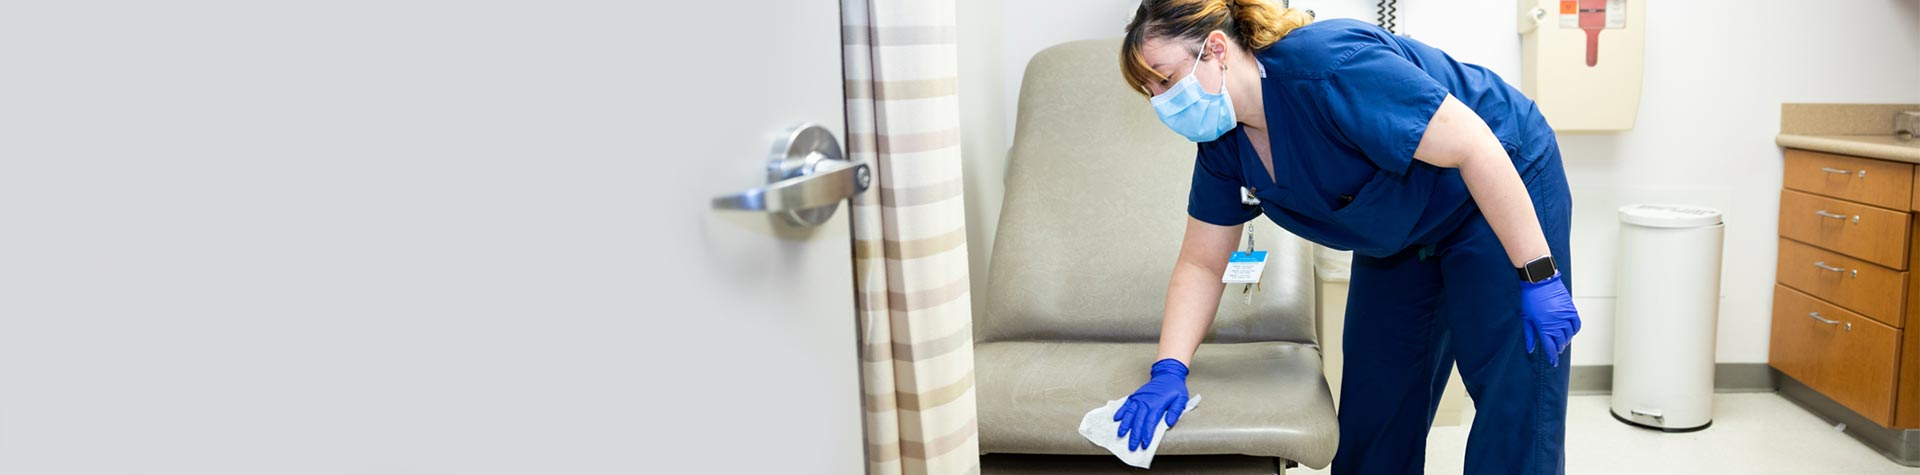 Image of nurse cleaning